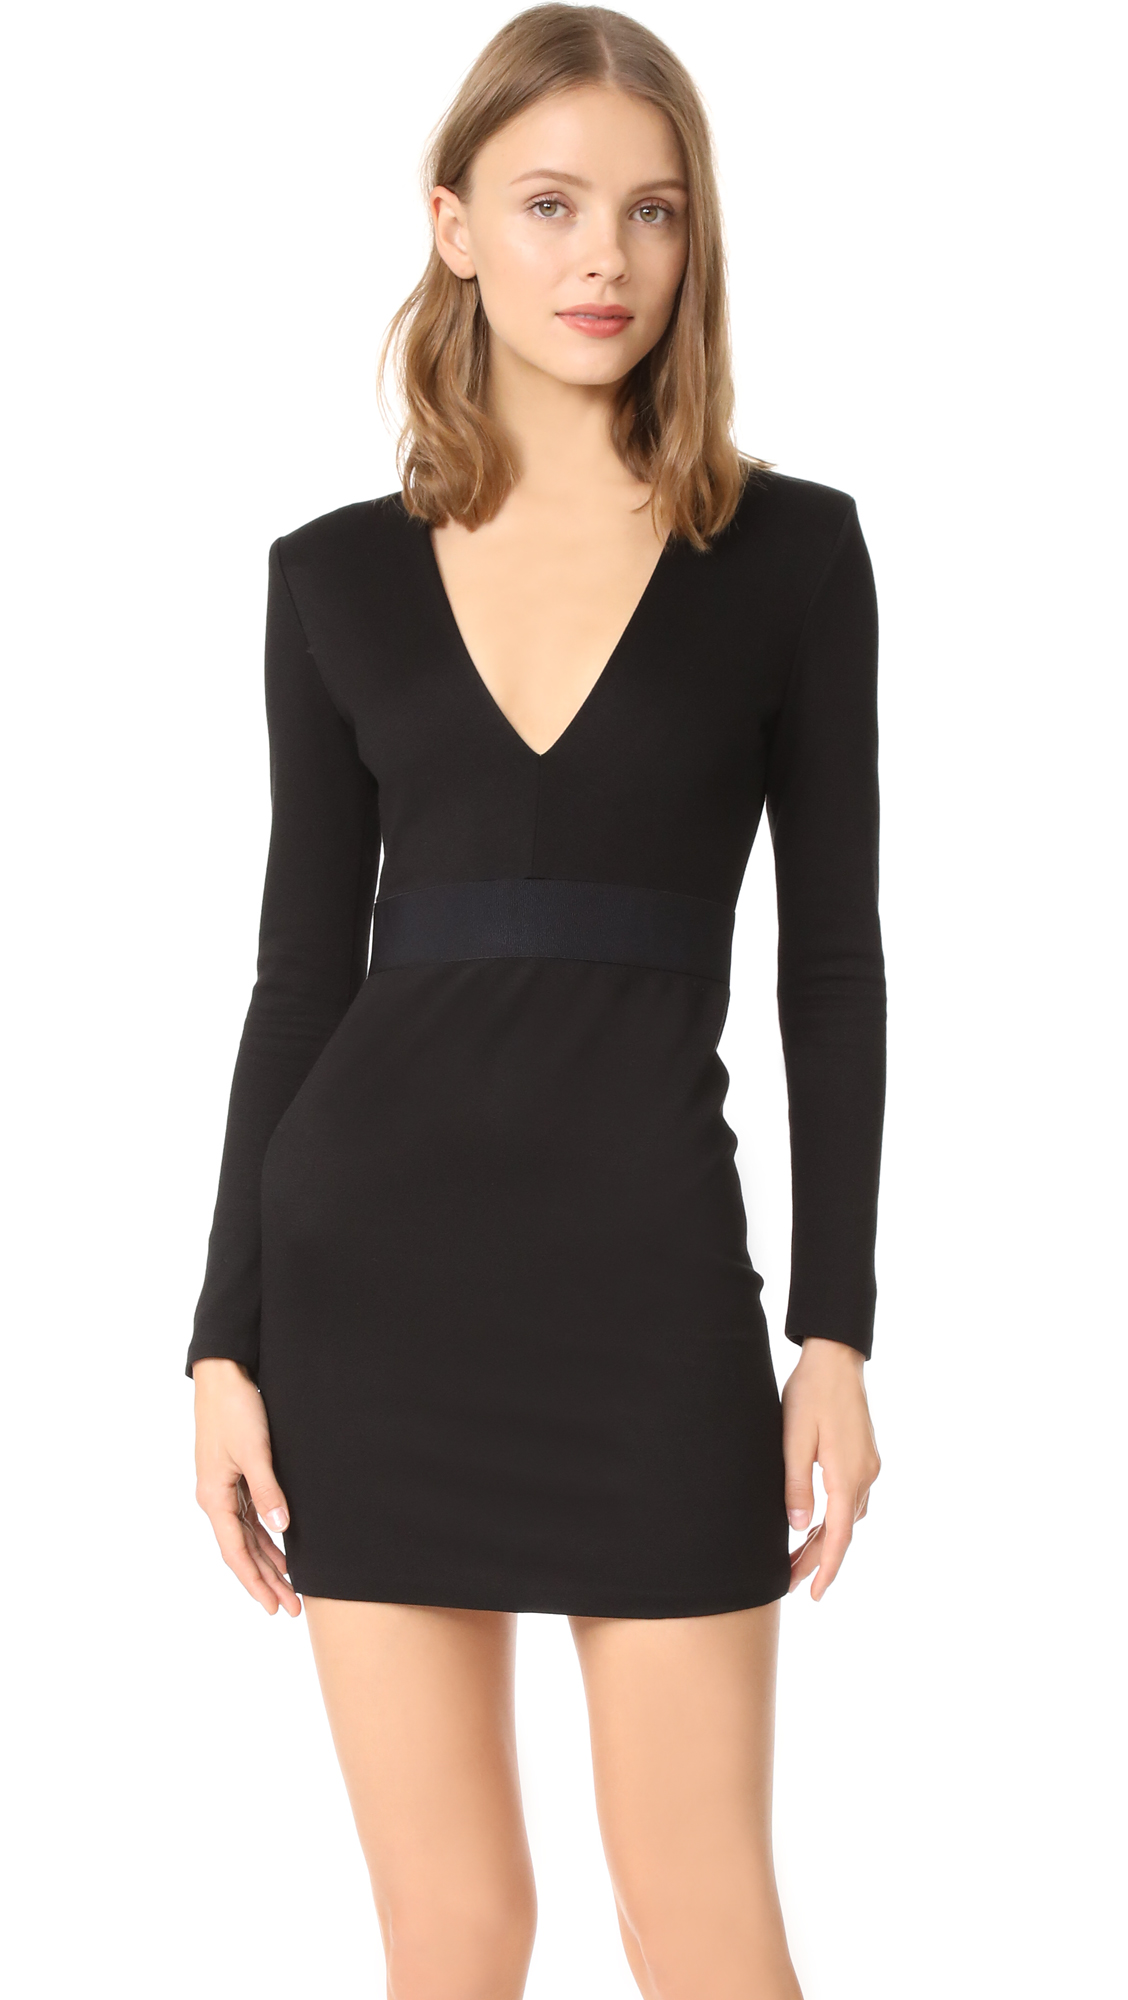 alice + olivia Simone Deep V Strong Shoulder Dress - Black